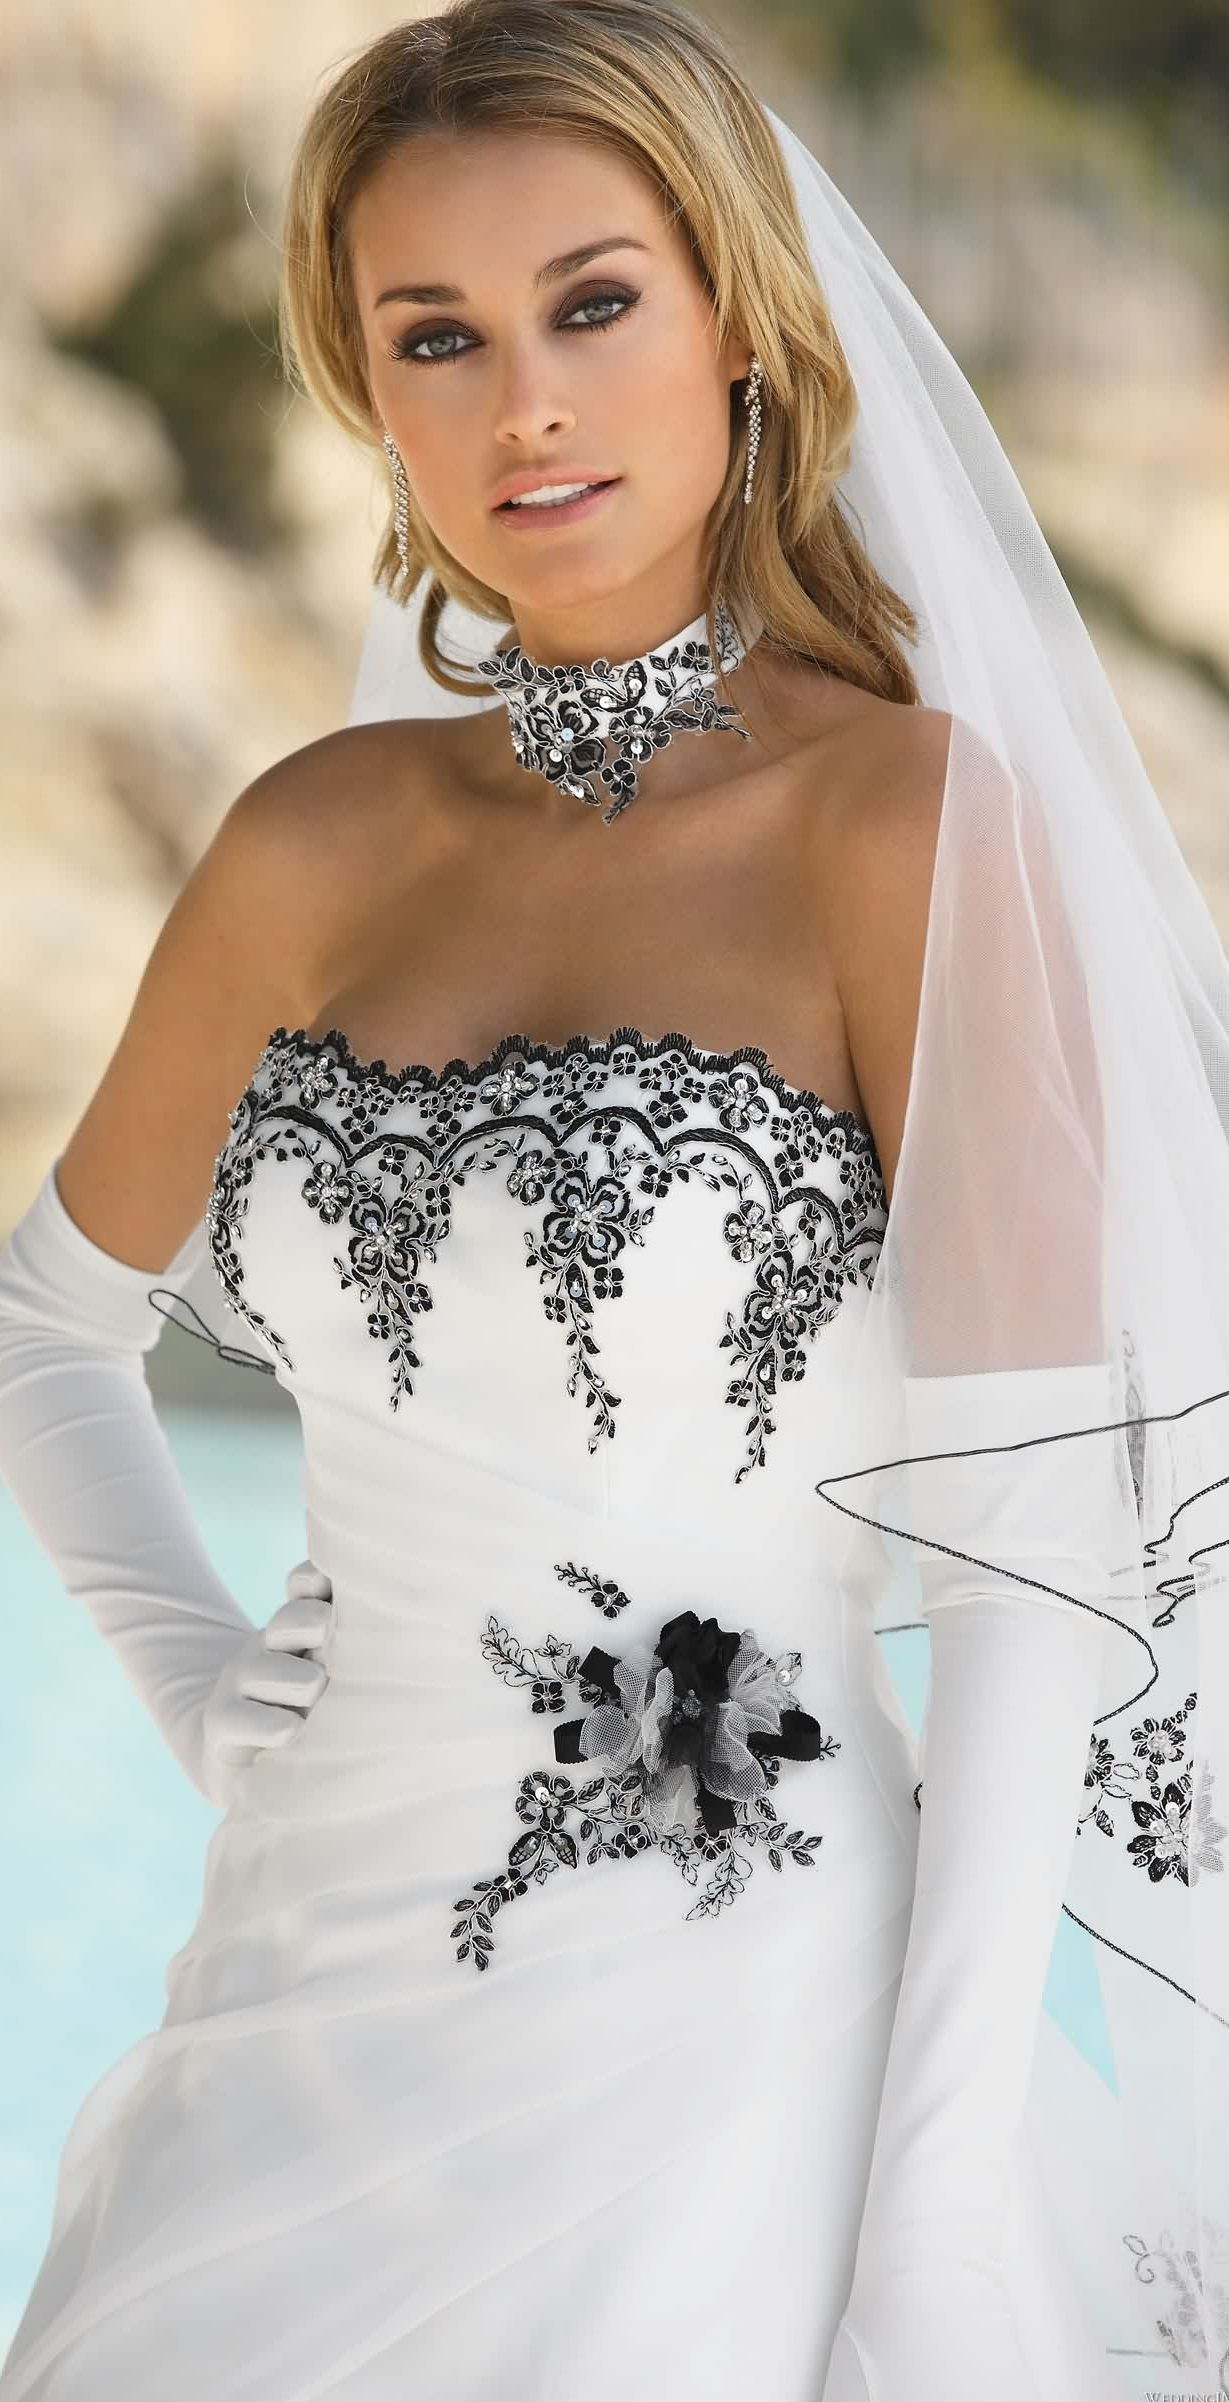 Wedding Dress With Black Lace Accents From Ladybird Fashion Dresses Black Wedding Dresses [ 2402 x 1229 Pixel ]